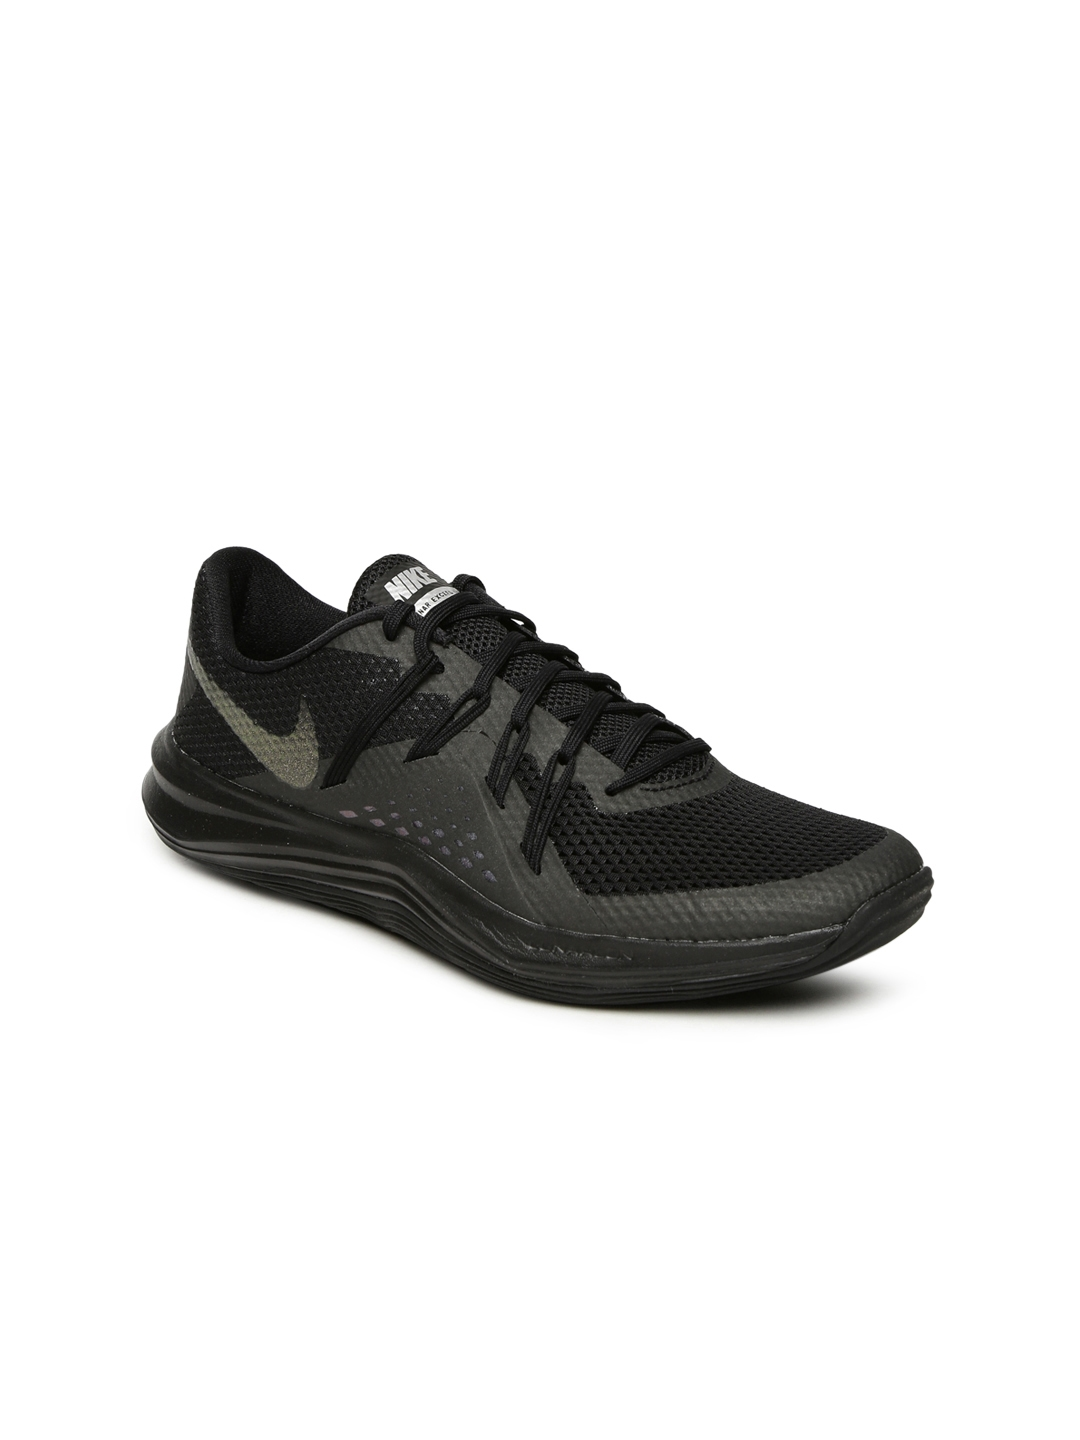 online retailer fa38f eafd7 11507698186369-Nike-Women-Charcoal-Training-or-Gym-Shoes -7251507698186225-1.jpg